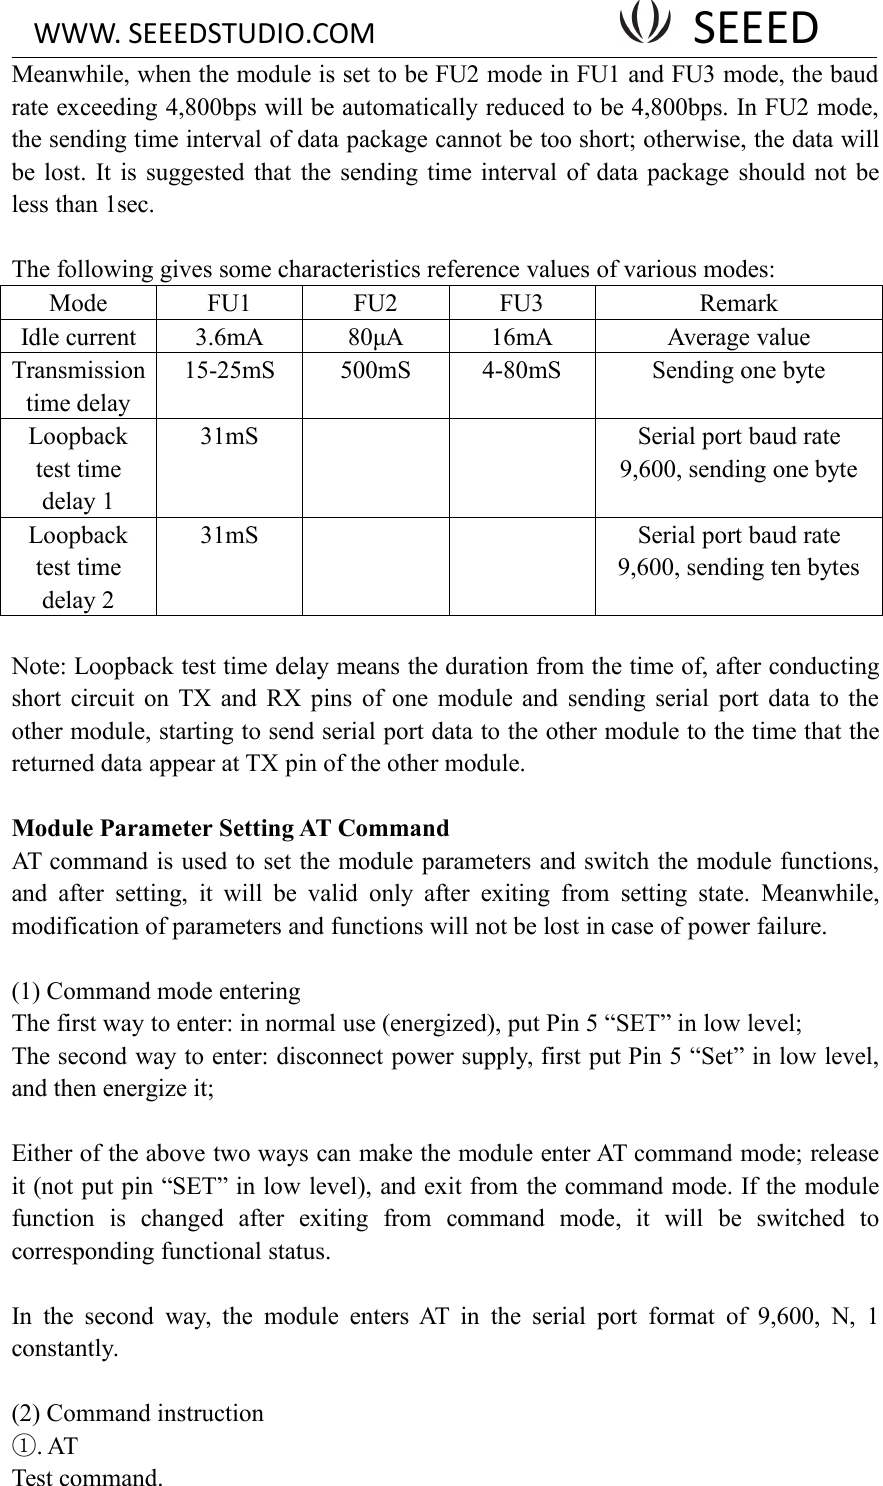 E38 smoke changed osv user manuals array define serial port user manuals rh define serial port user manuals 25forcollege com fandeluxe Image collections